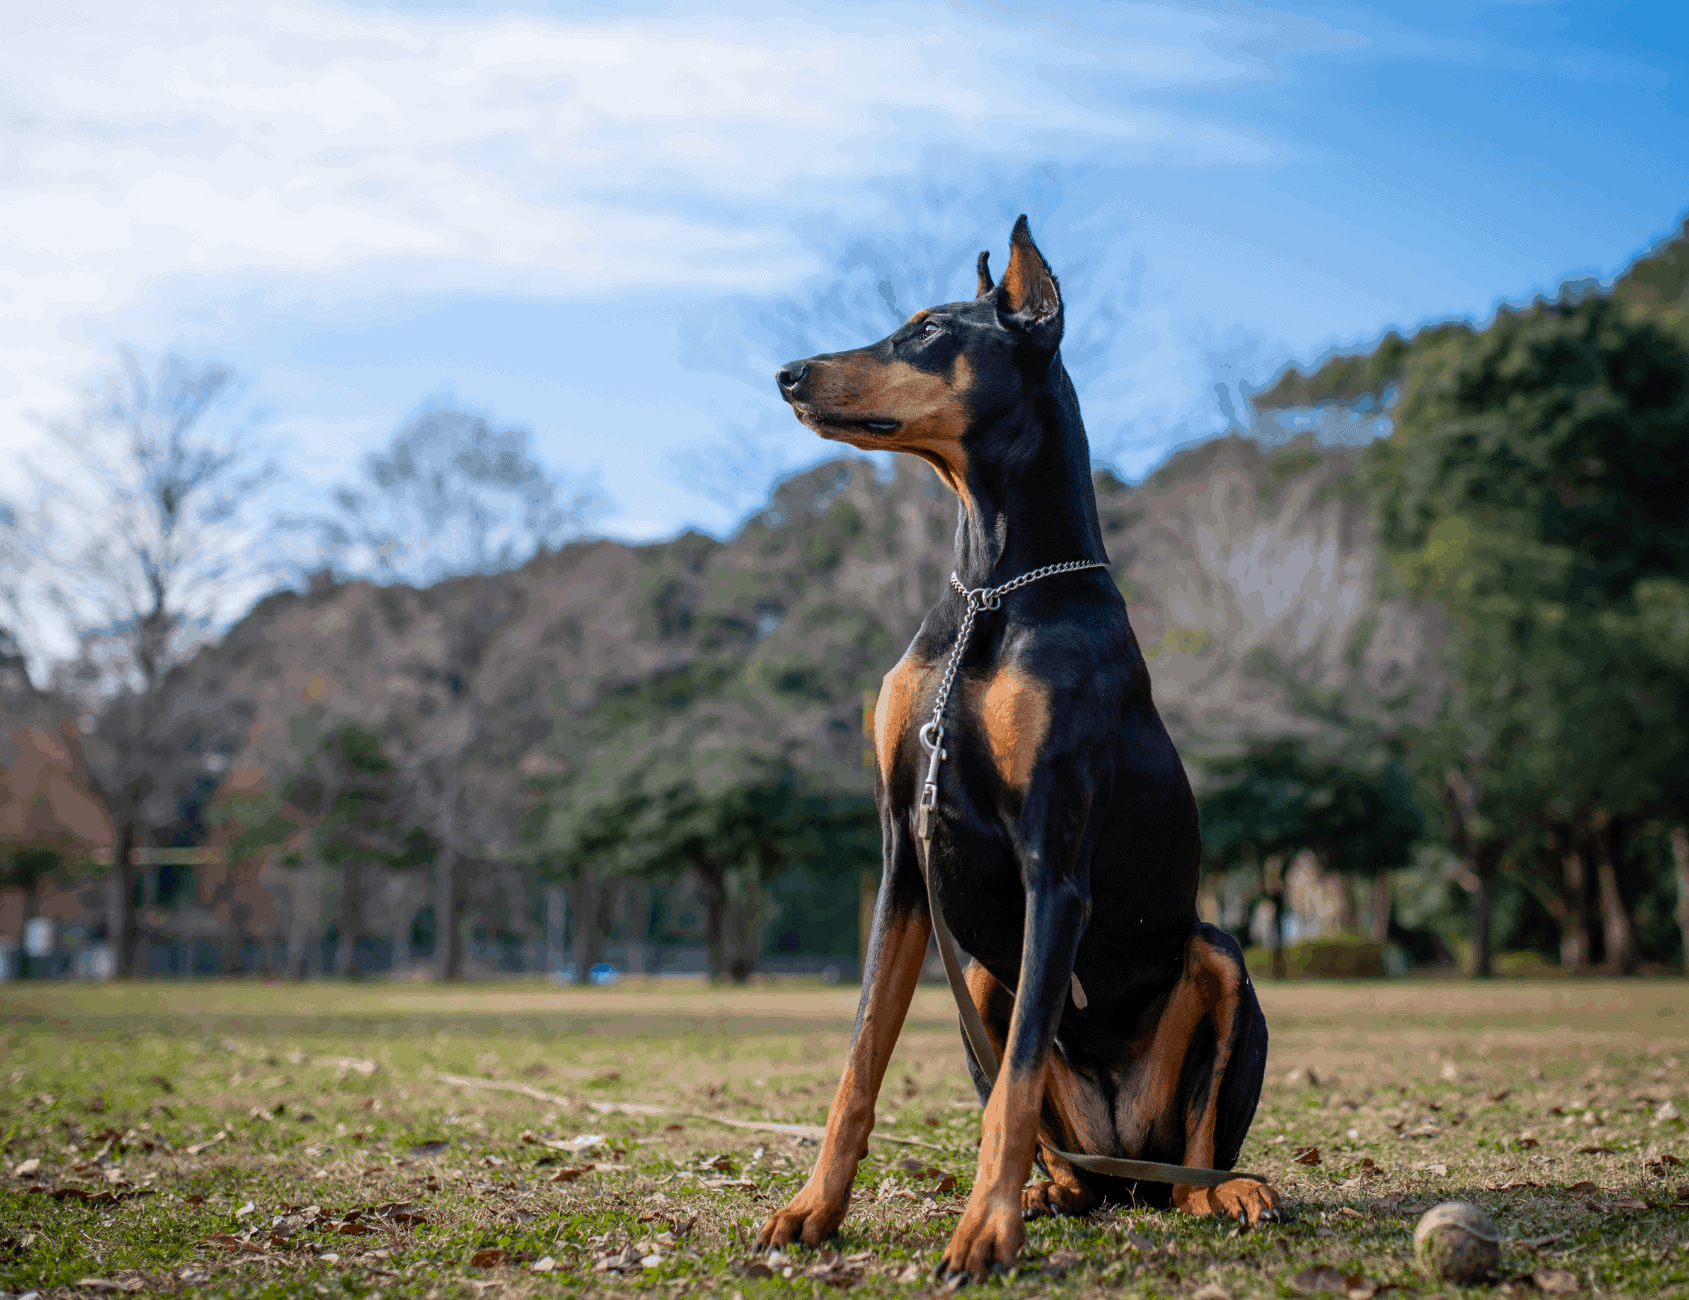 Black Doberman with tan markings instead of the classic rust red Doberman markings.